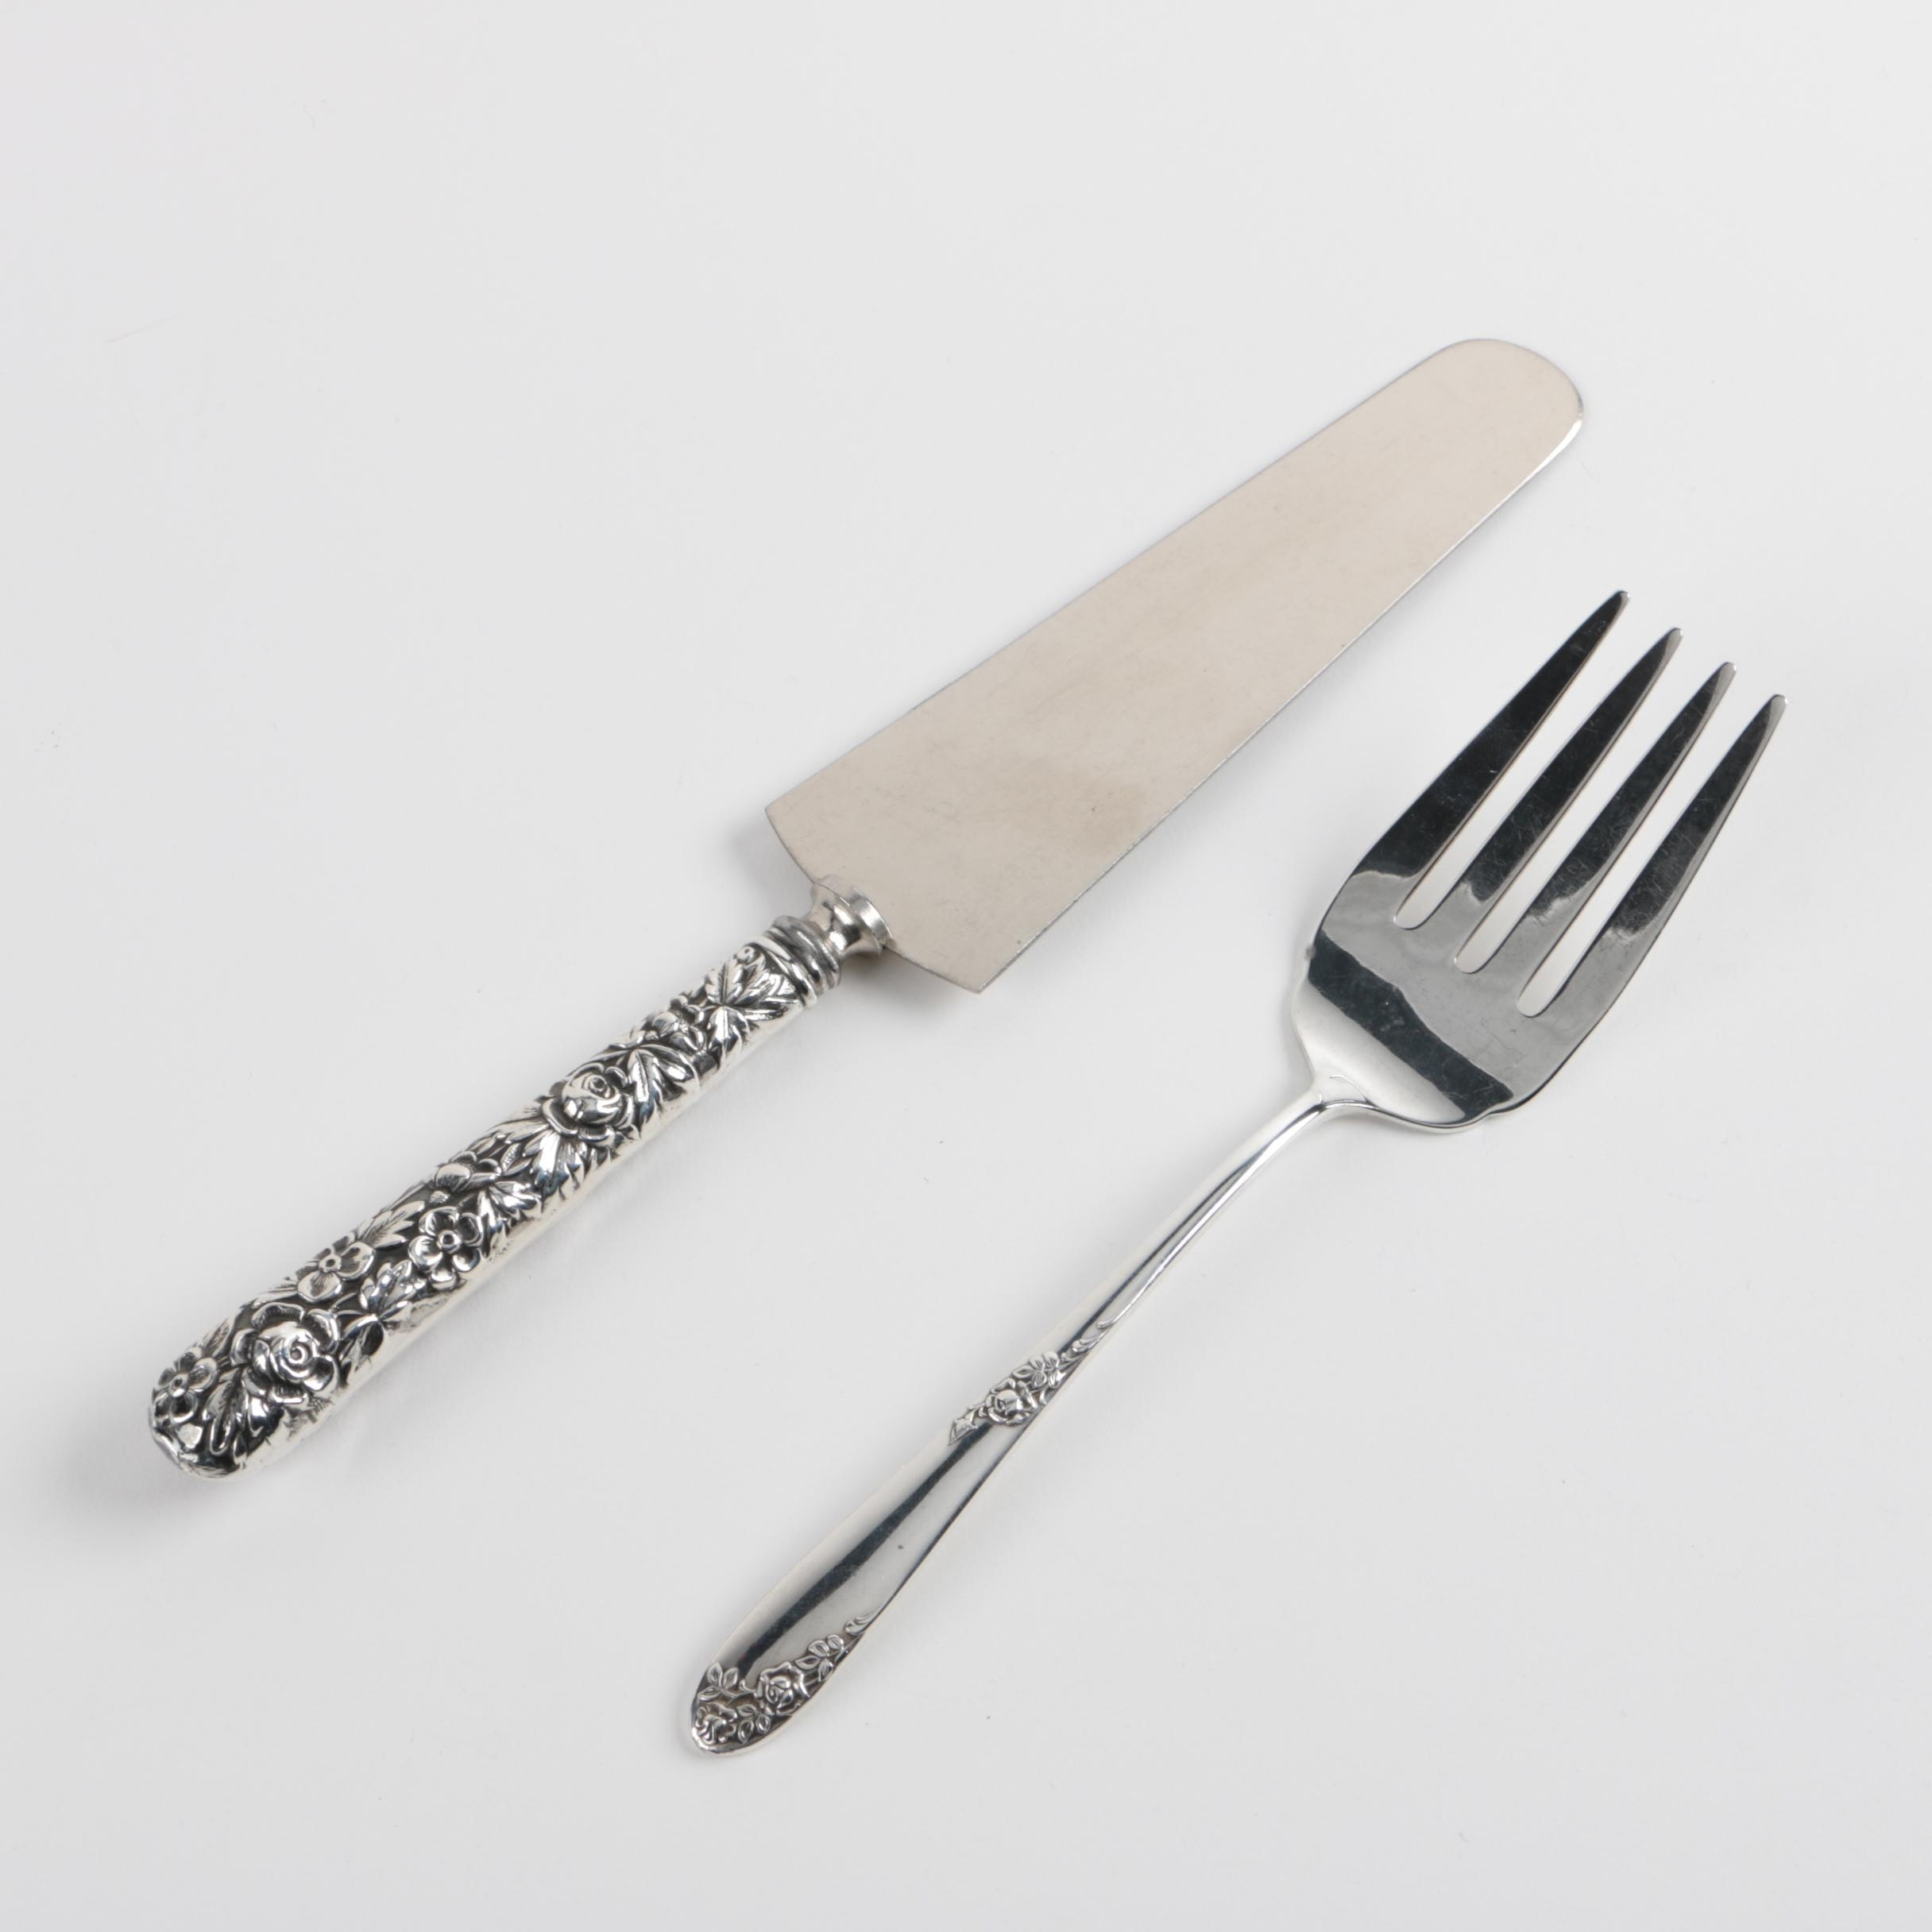 """Lunt """"Sweetheart Rose"""" Sterling Meat Fork with G.H. French & Co. Cake Knife"""